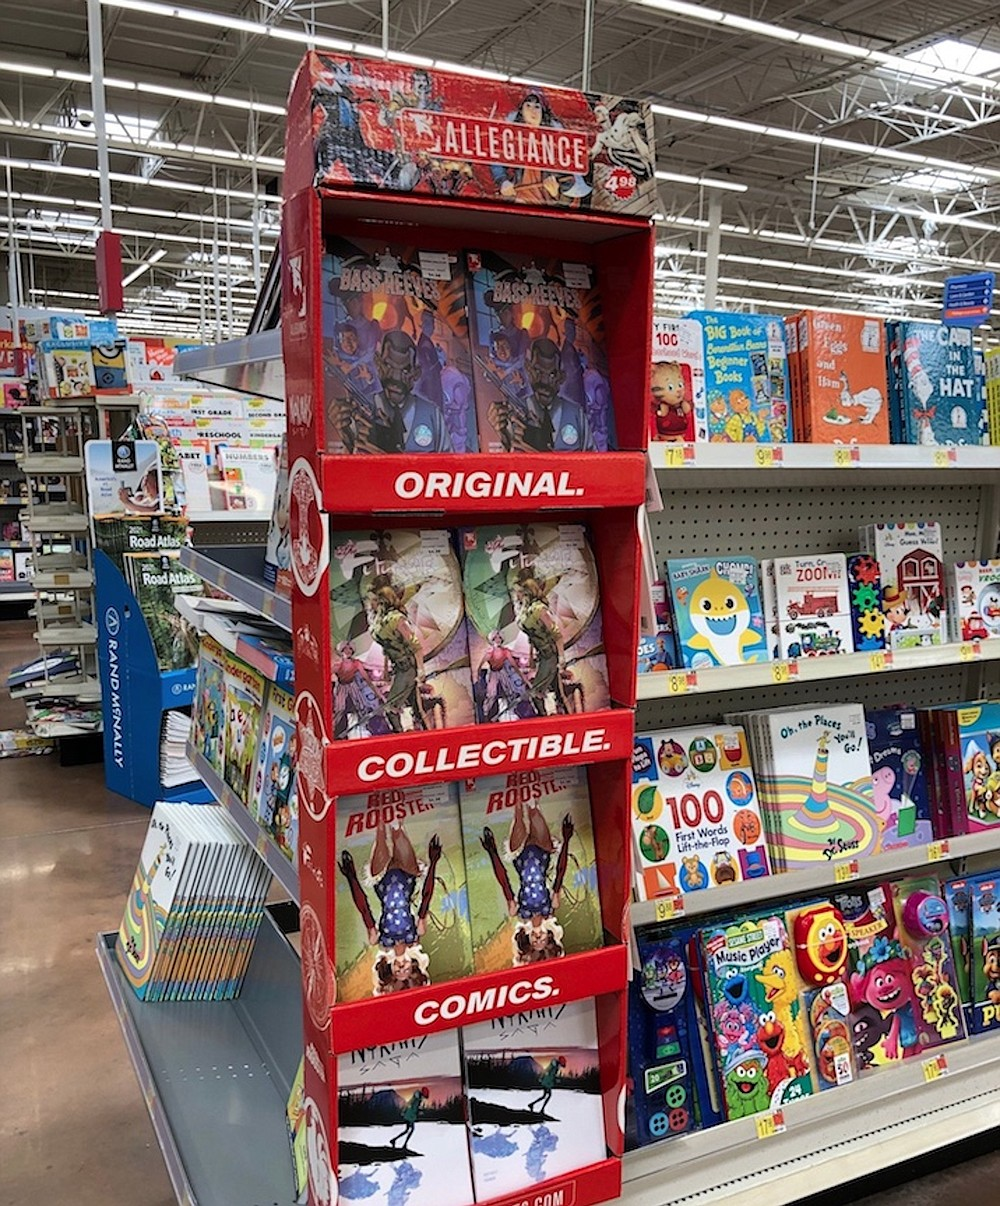 Copies of the latest issues of comic books from Allegiance Arts & Entertainment are on display at Walmart, 19301 Cantrell Road, Little Rock. (Arkansas Democrat-Gazette/Sean Clancy)